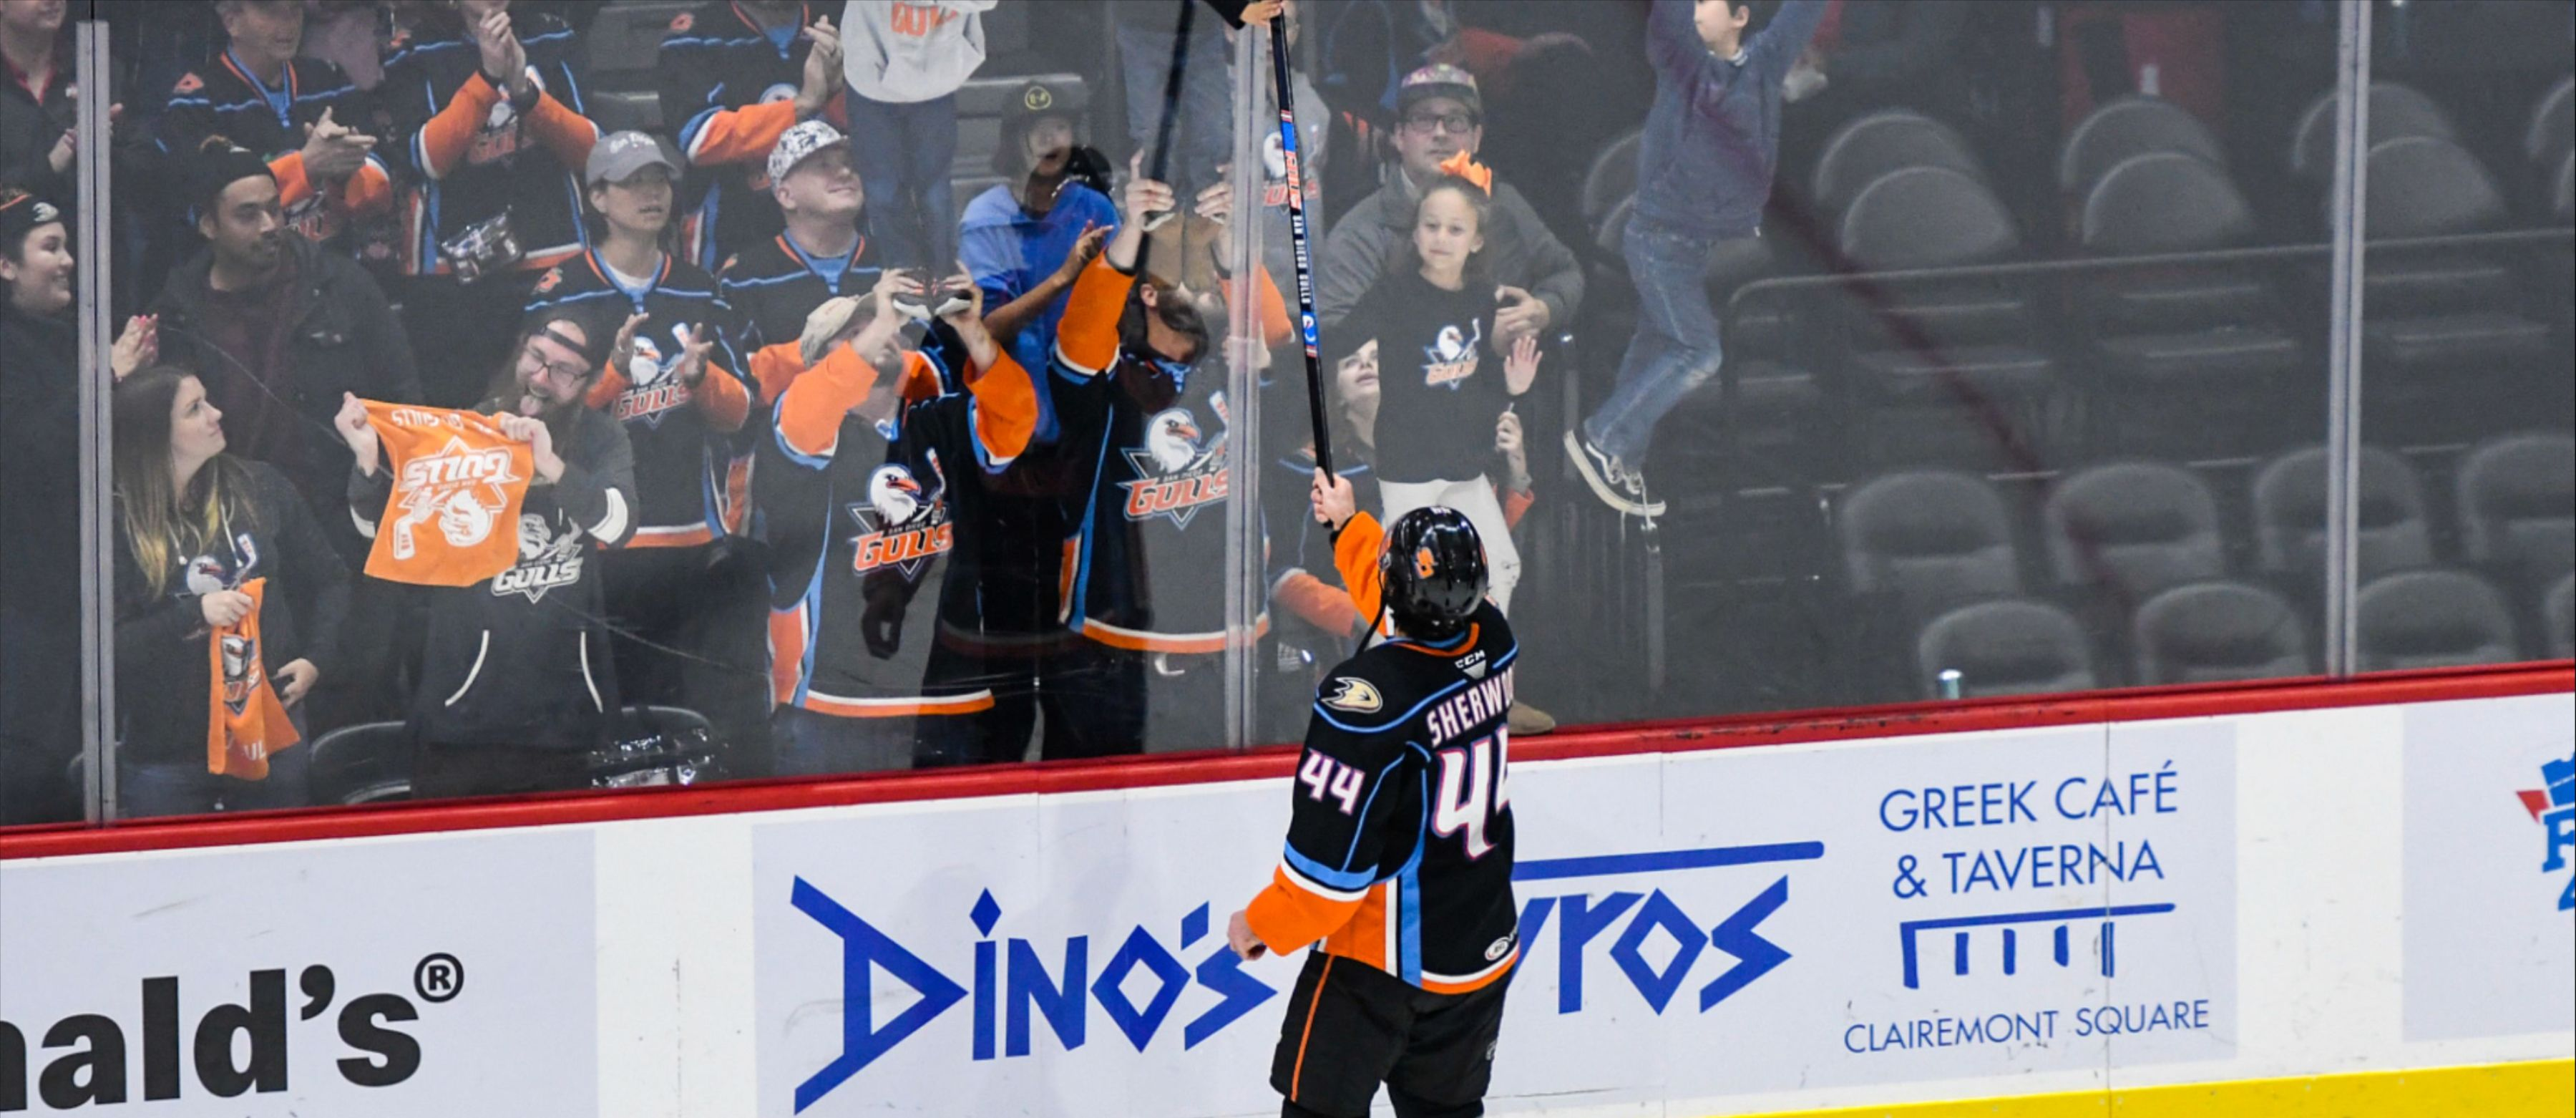 San Diego Gulls Receives 2019-2020 AHL Outstanding Fan Experience Award